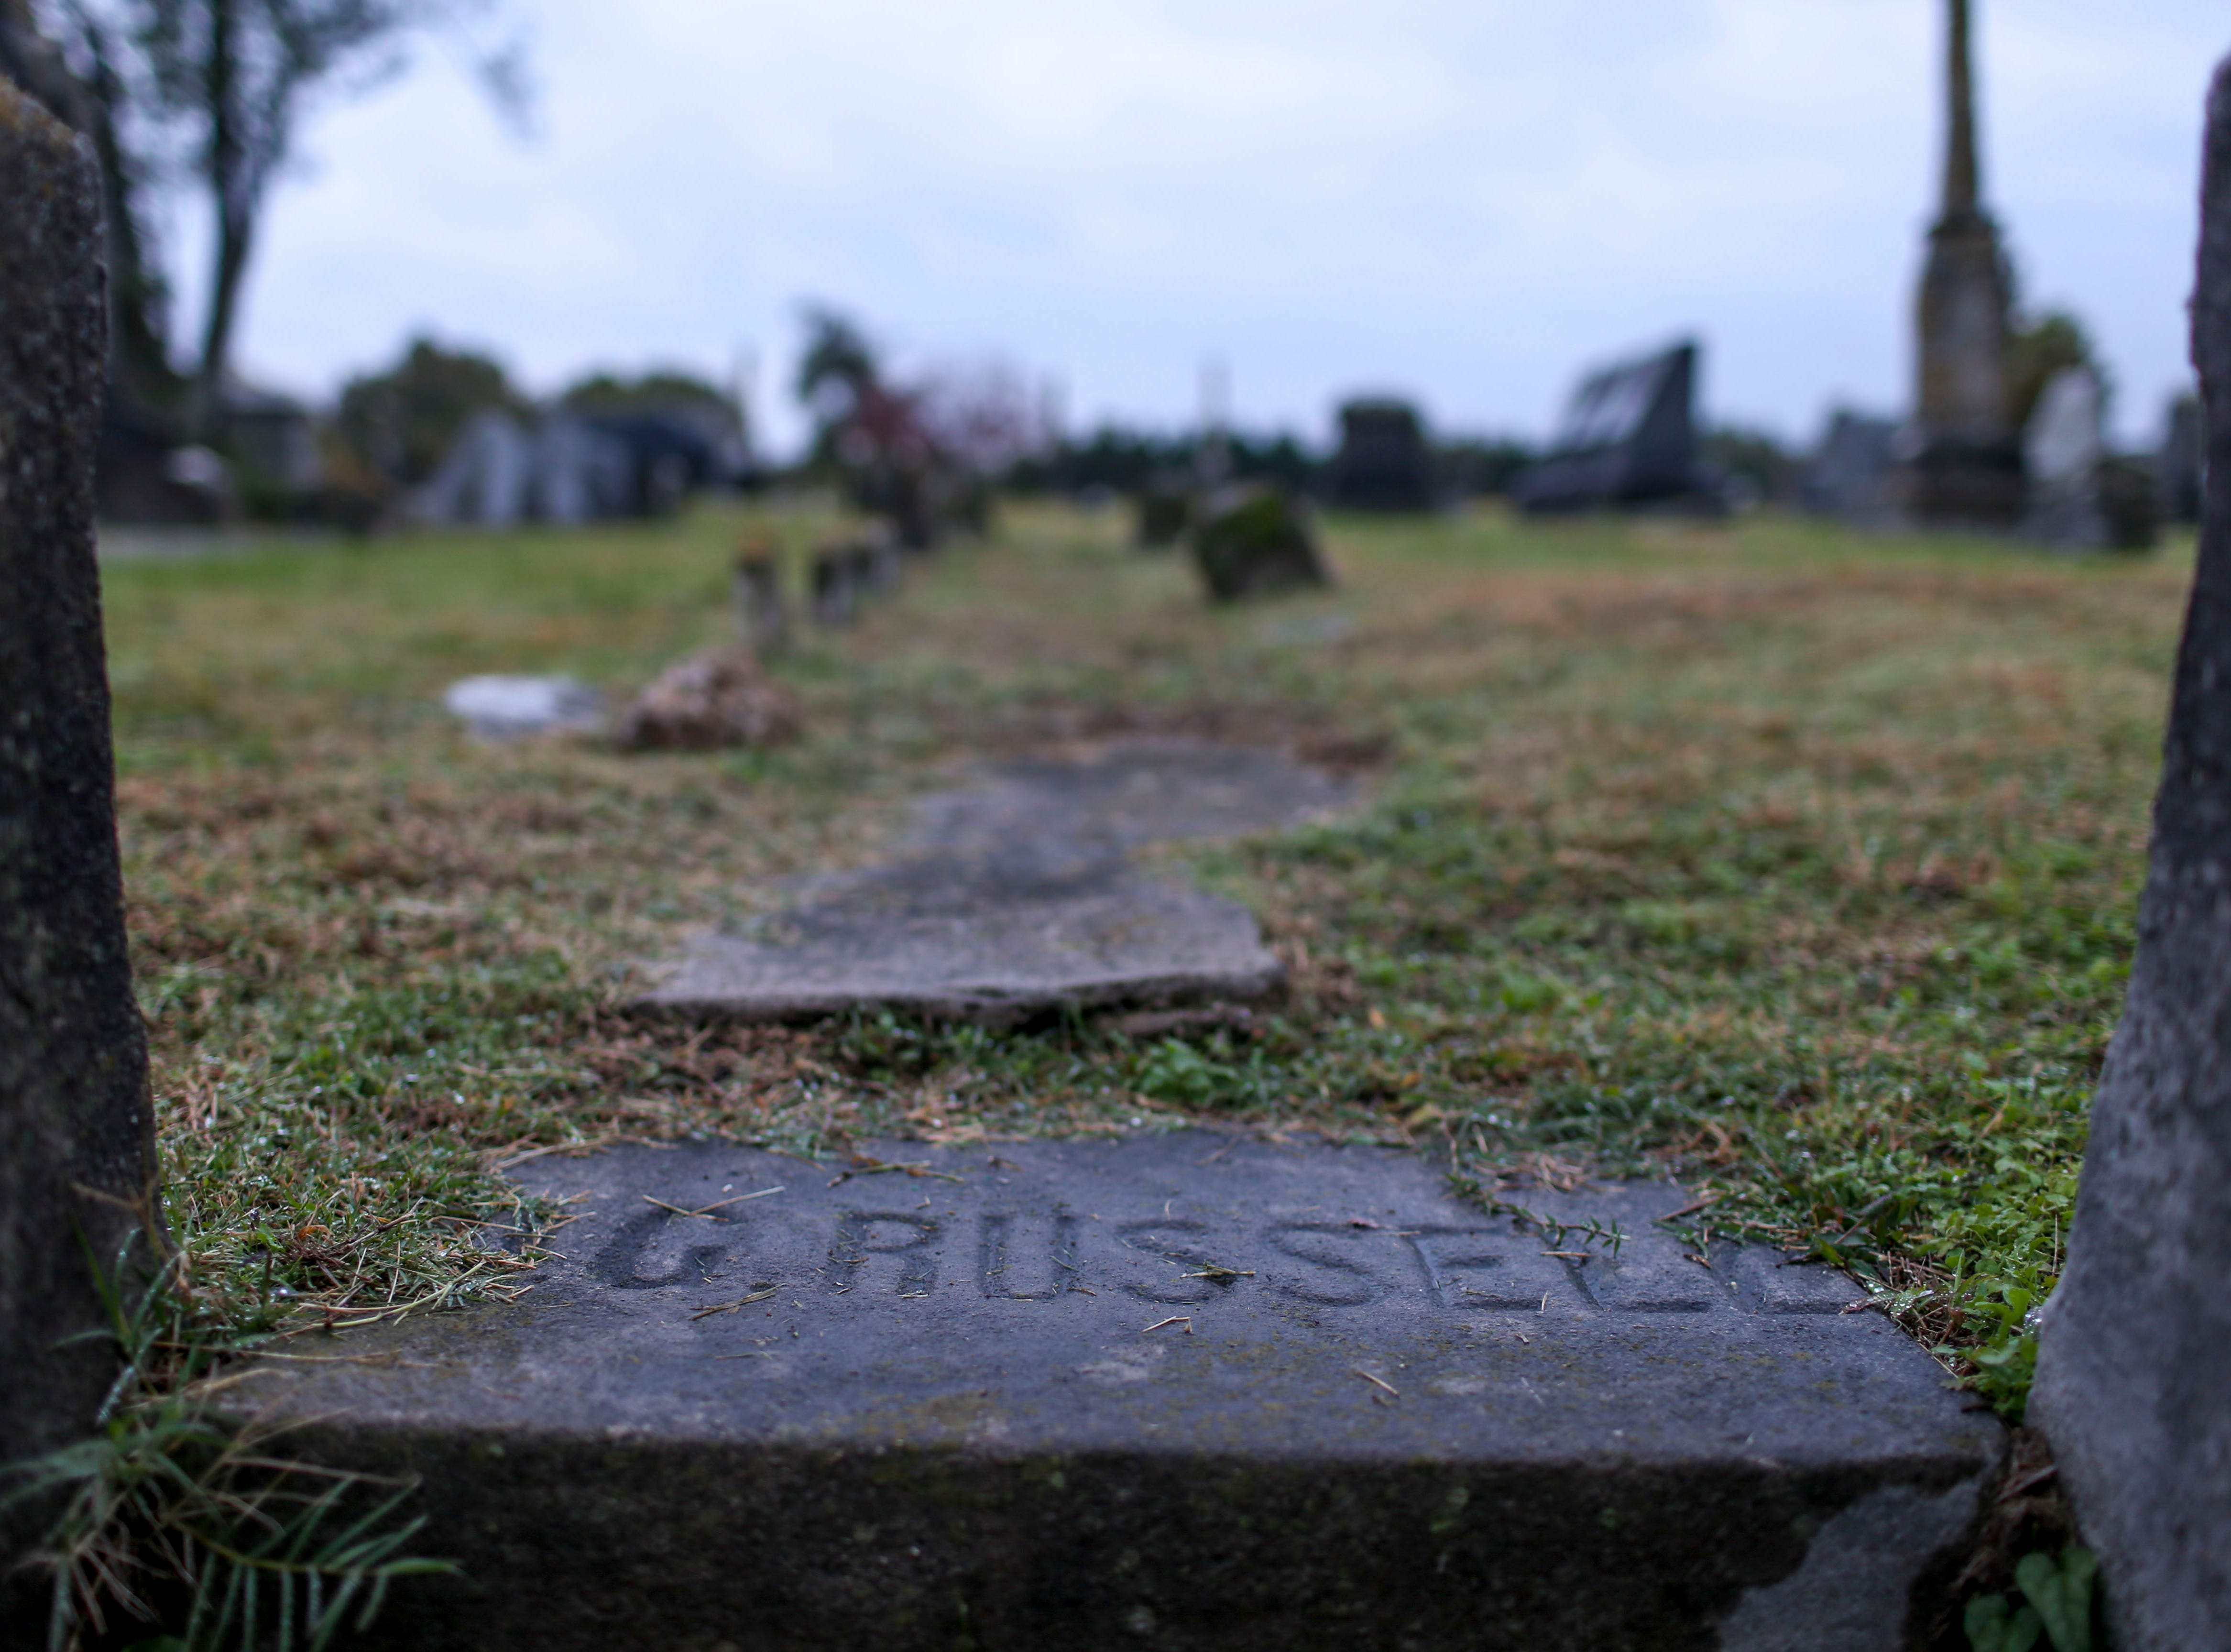 An etched stone acts as a stair step to part of the cemetery during Ghost Walk tour at Riverside Cemetery in Jackson, Tenn., on Friday, Oct. 26, 2018.